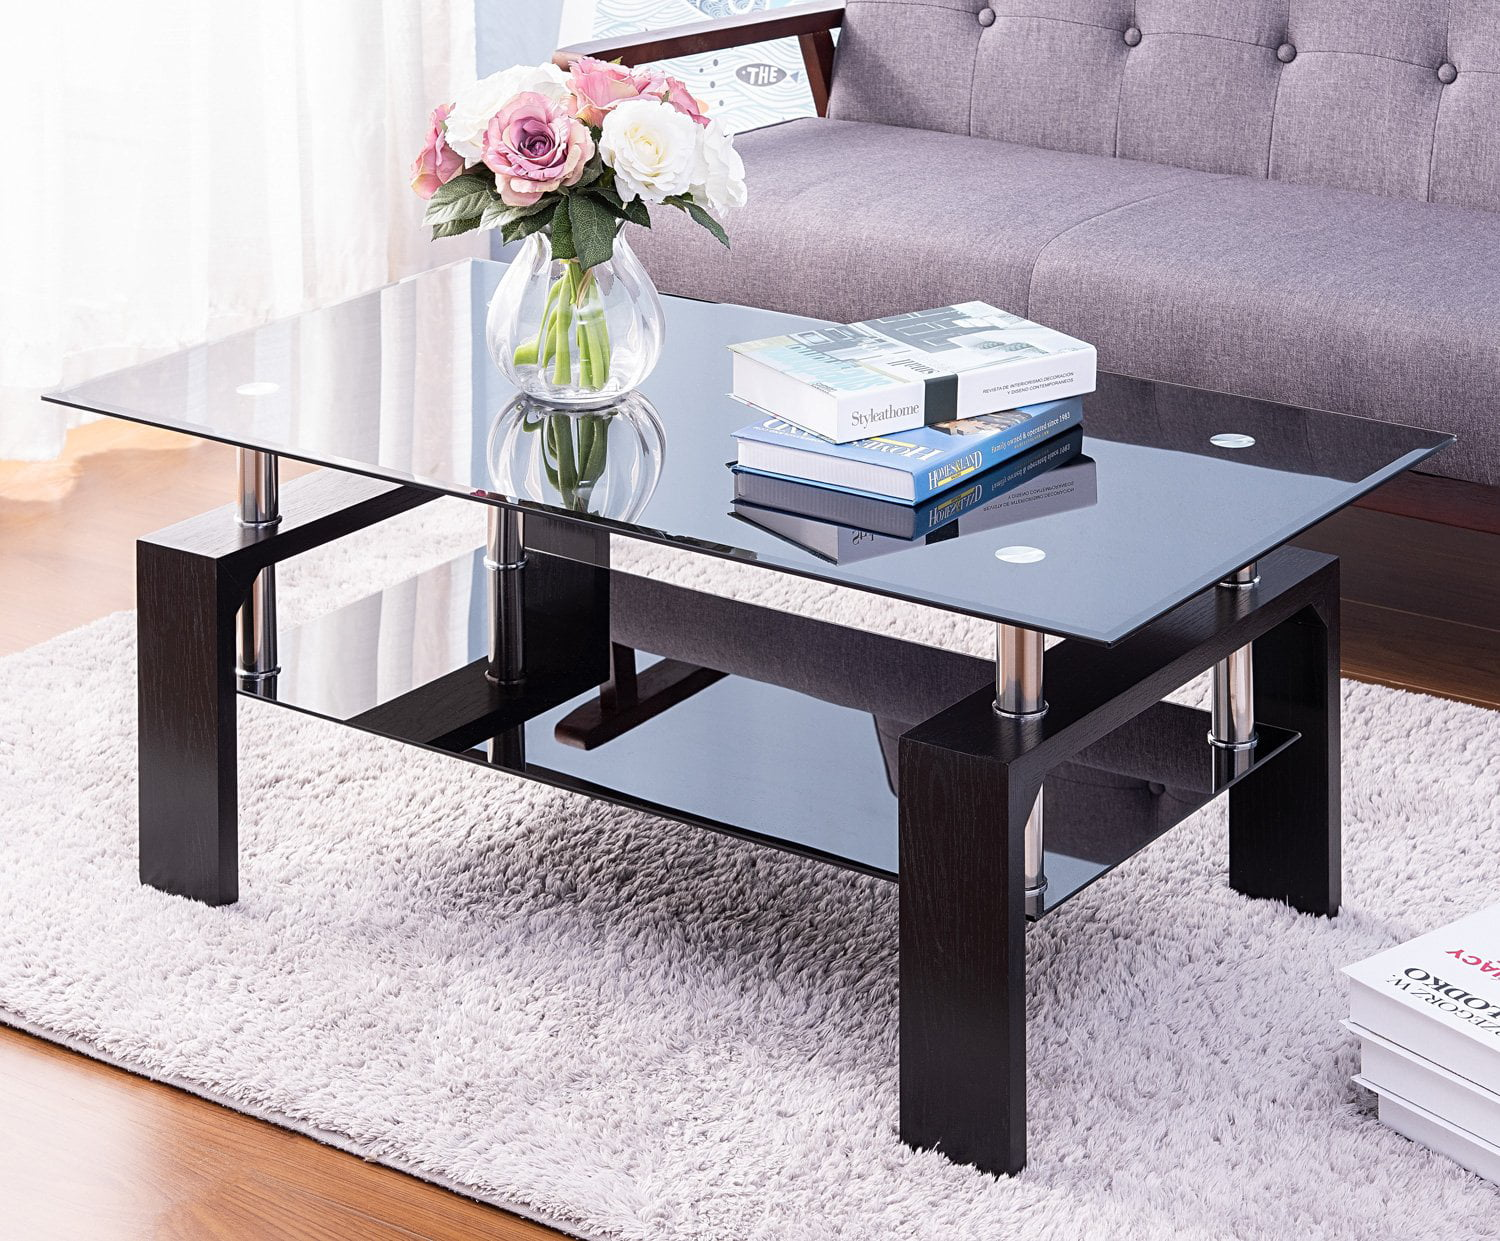 Modern Glass Coffee Table For Living Room Black Rectangle Side Coffee Table With Lower Shelf 43 3 X23 6 X 17 7 Coffee Table With Metal Legs Rectangle Center Table Sofa Table Home Furniture L5508 Walmart Com